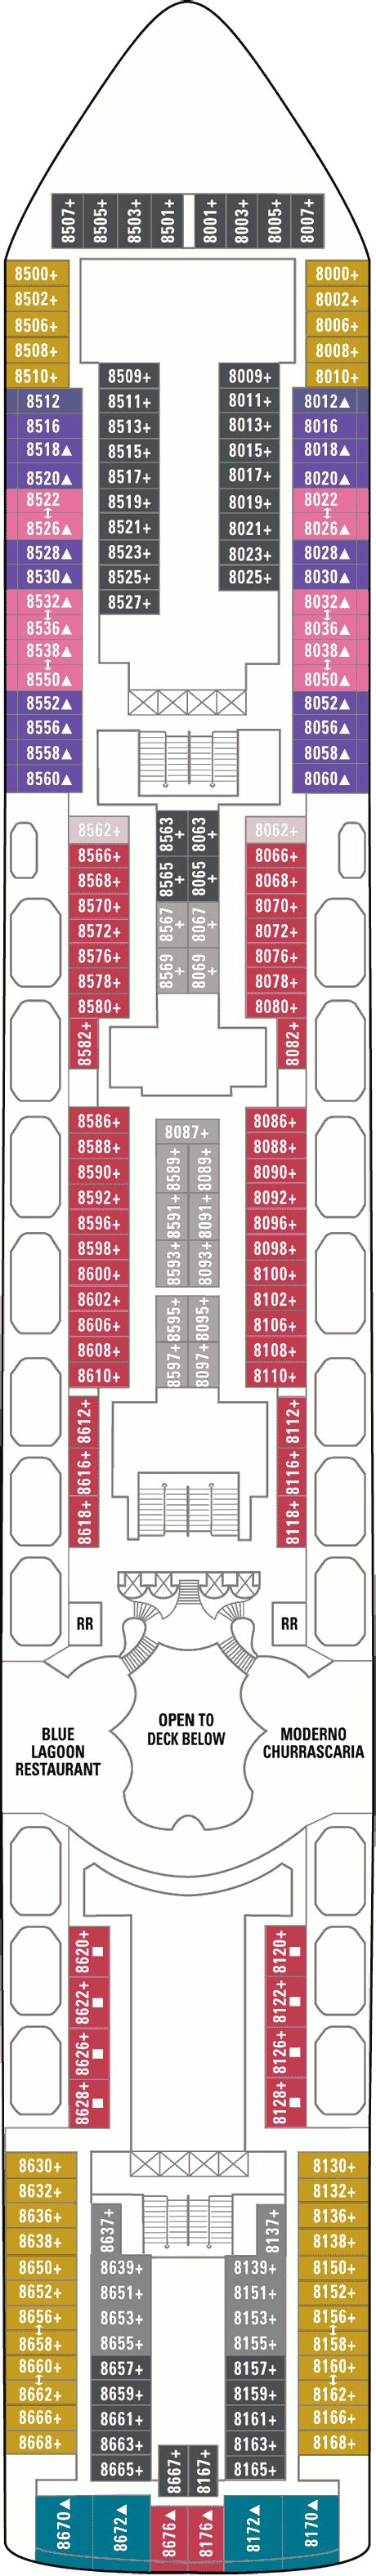 norwegian dawn floor plan norwegian dawn deck plans